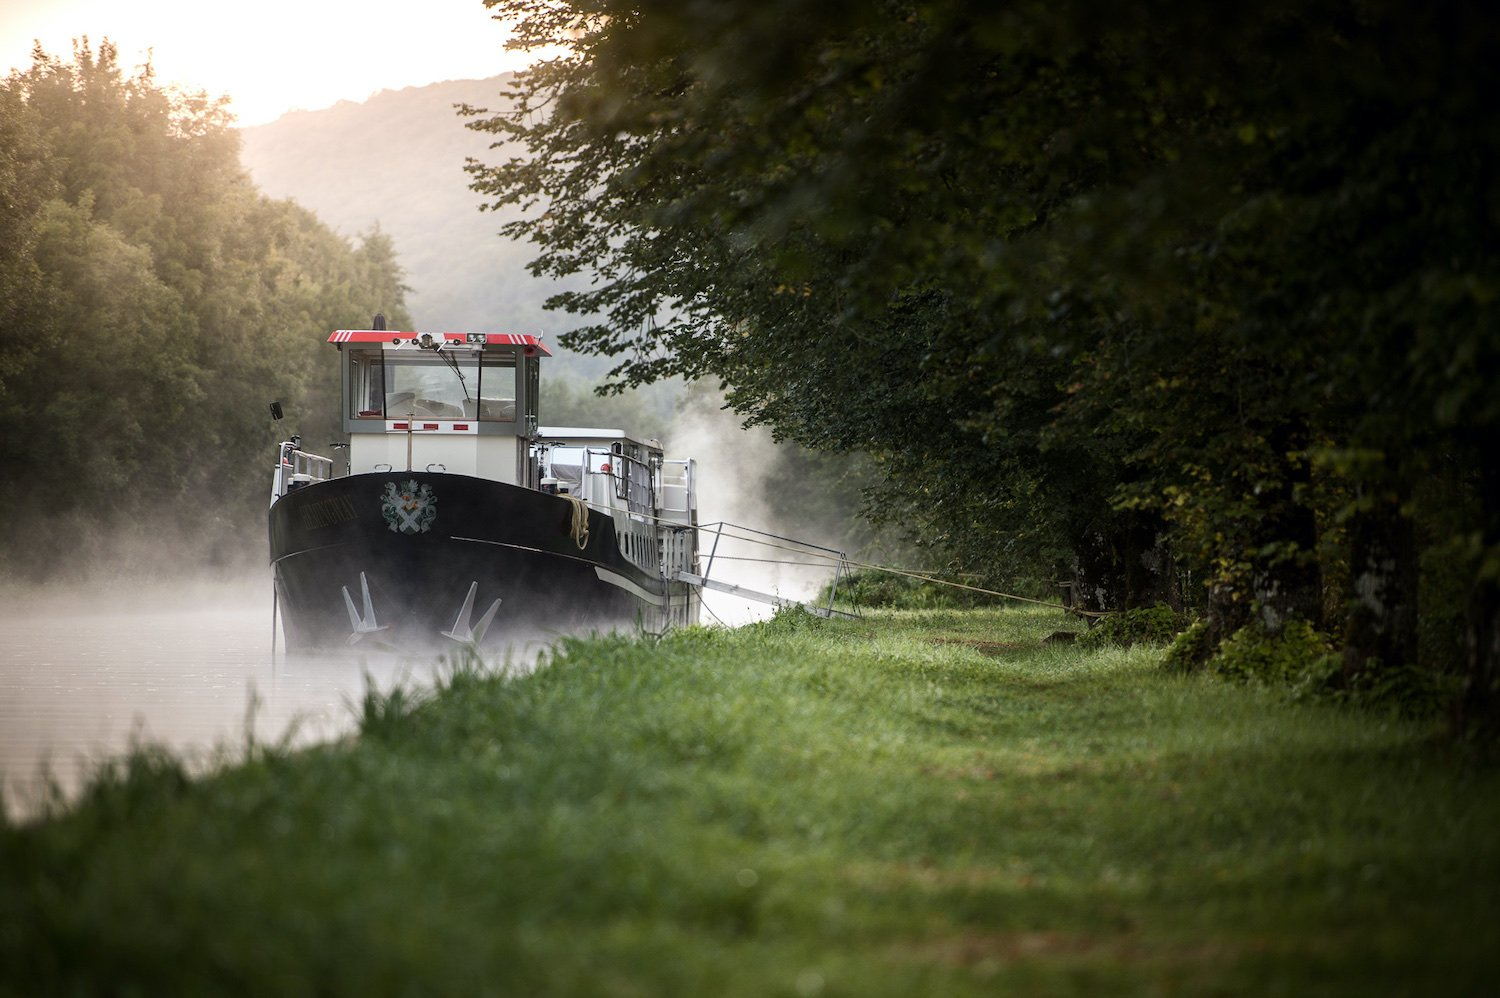 hotel barge Grand Victoria cruising the Burgundy canal